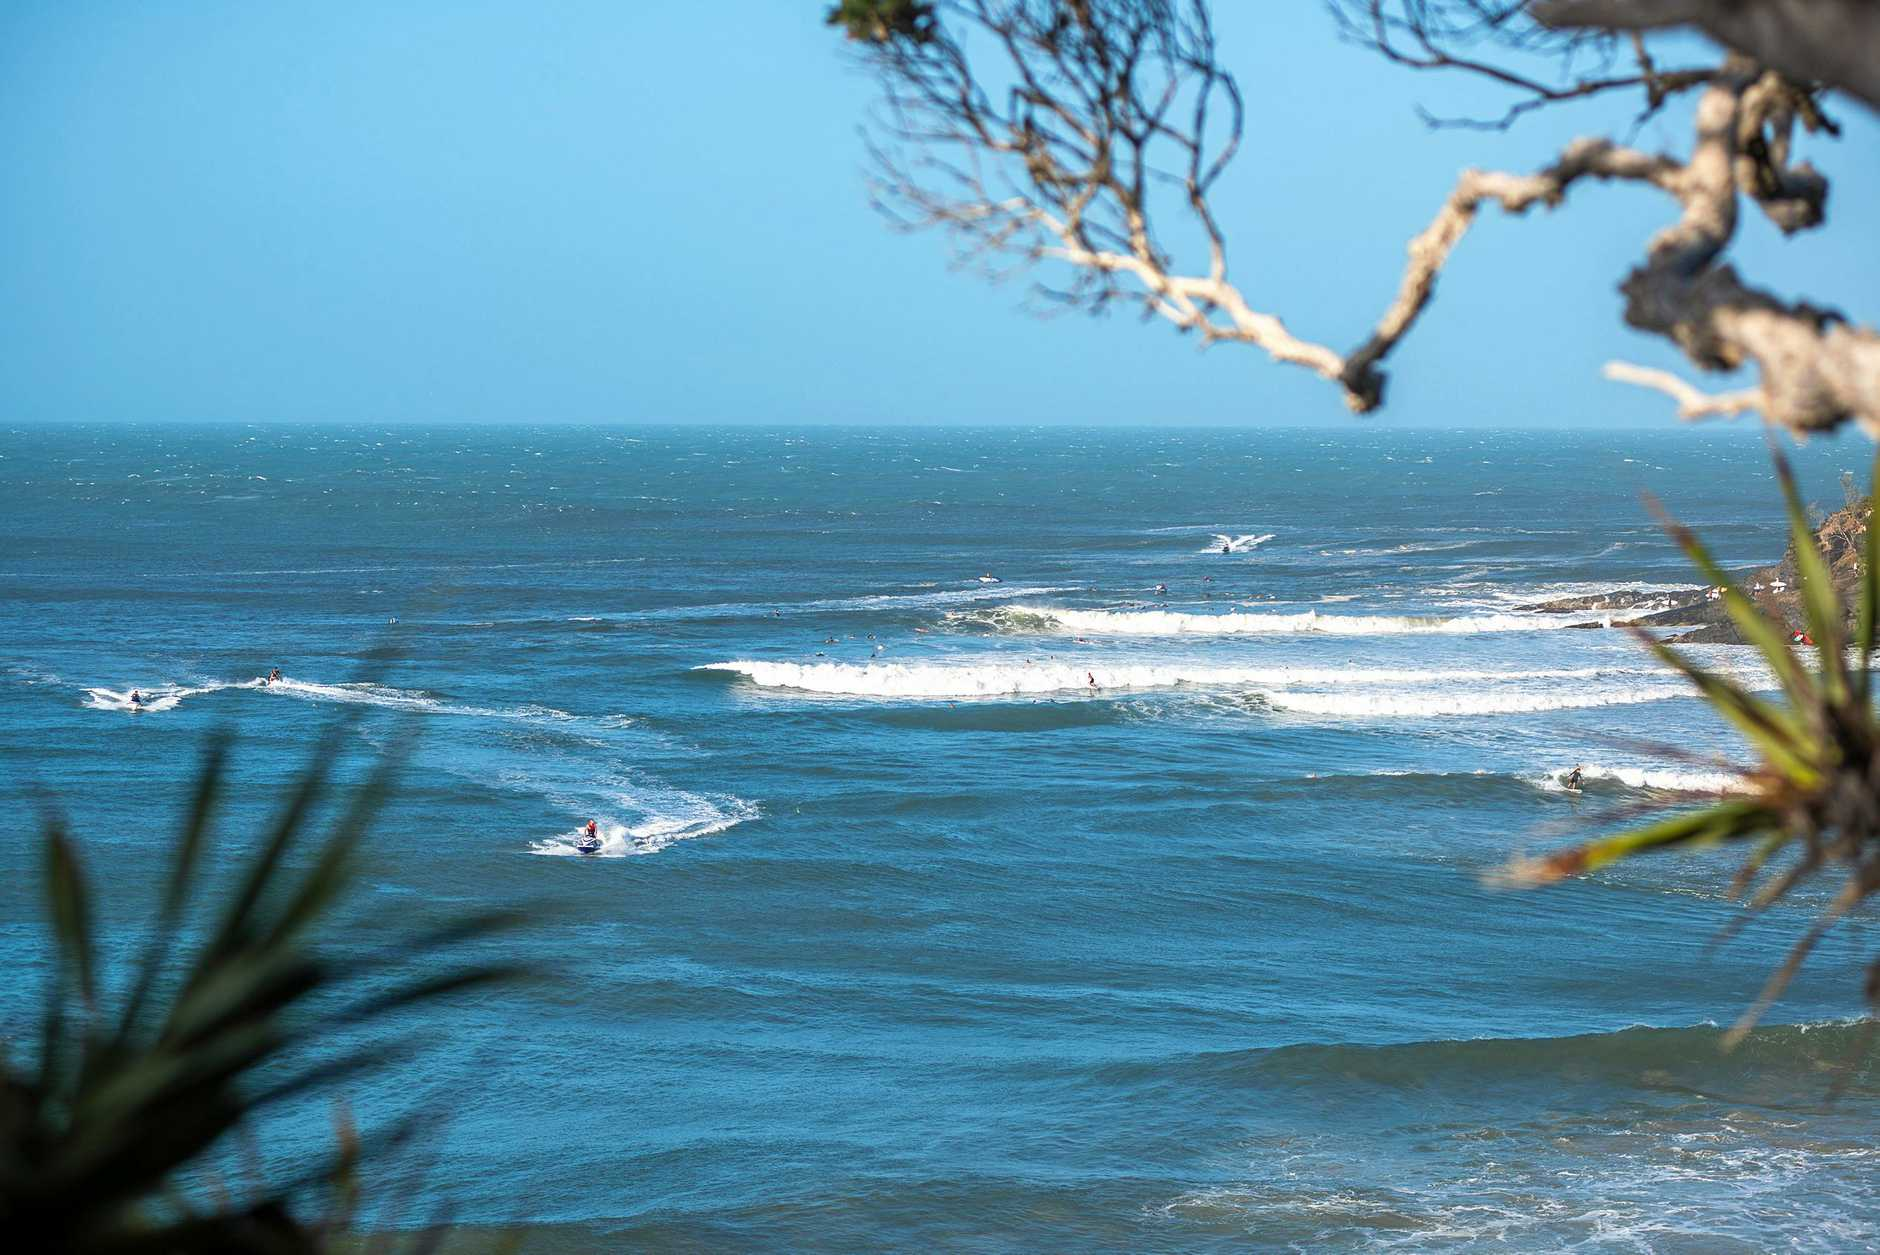 The smudge of jet ski wake spoiled the line up, pulling in surfers who took every wave on offer during the Oma swell.